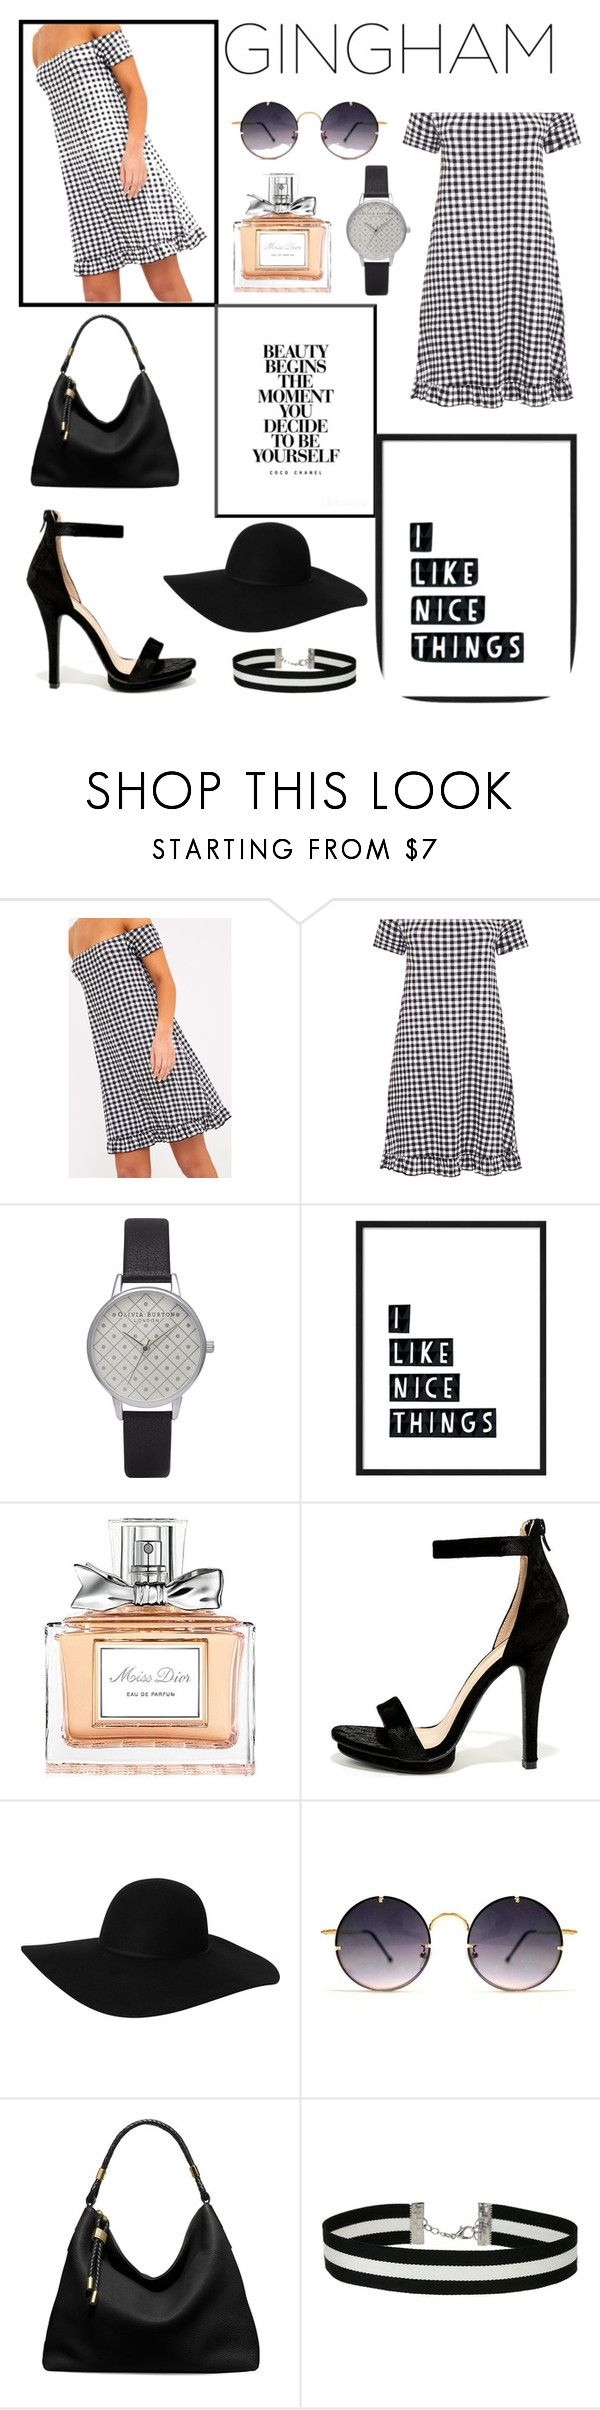 """Gingham"" by margaux-blouin ❤ liked on Polyvore featuring Olivia Burton, Chanel, Christian Dior, Wild Diva, Monki, Spitfire, Michael Kors, Miss Selfridge, black and blackandwhite"